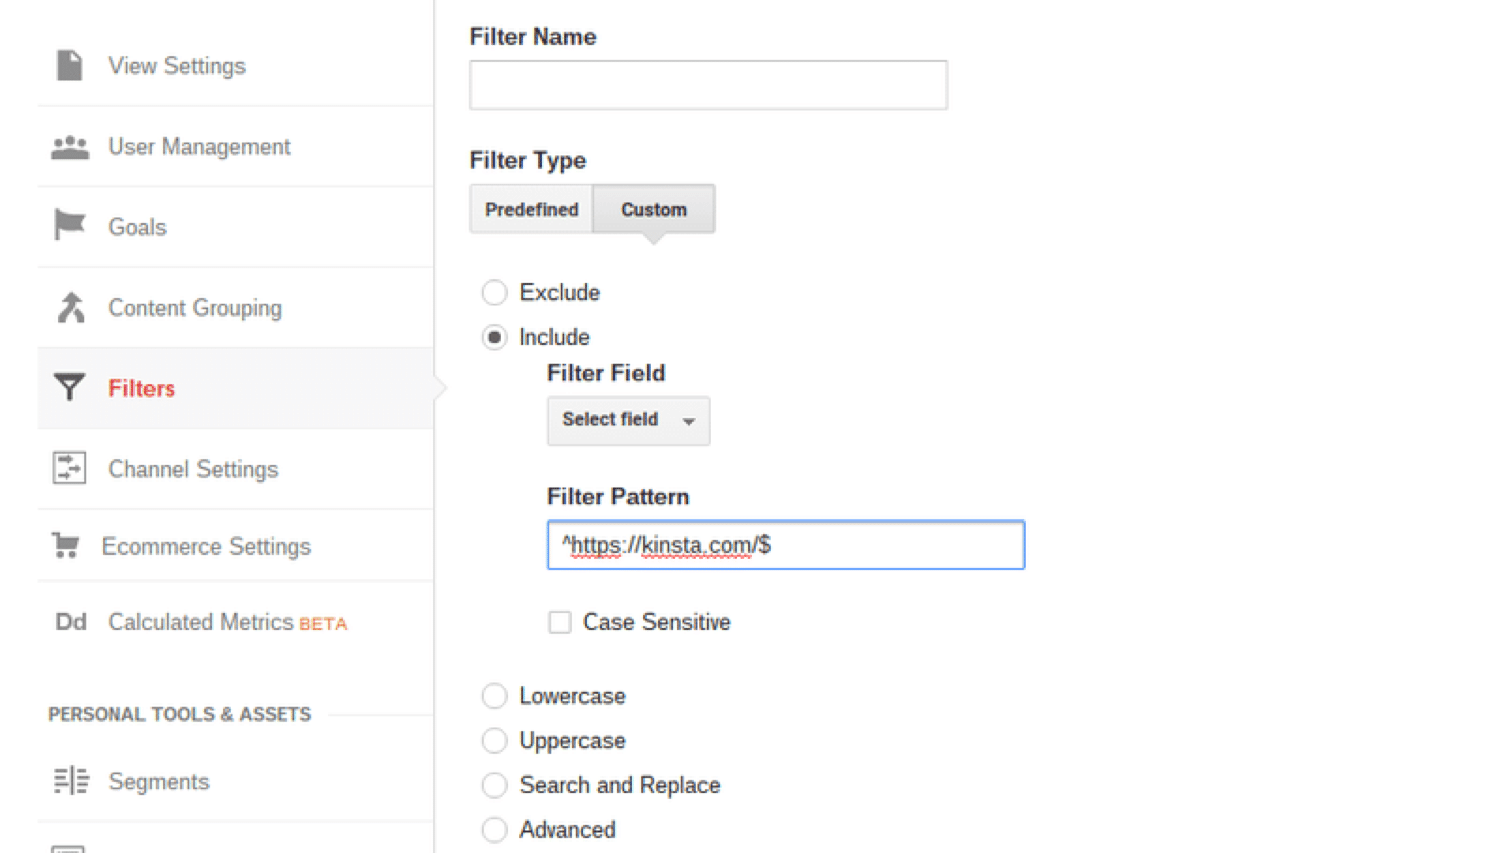 Adding a custom filter in Google Analytics